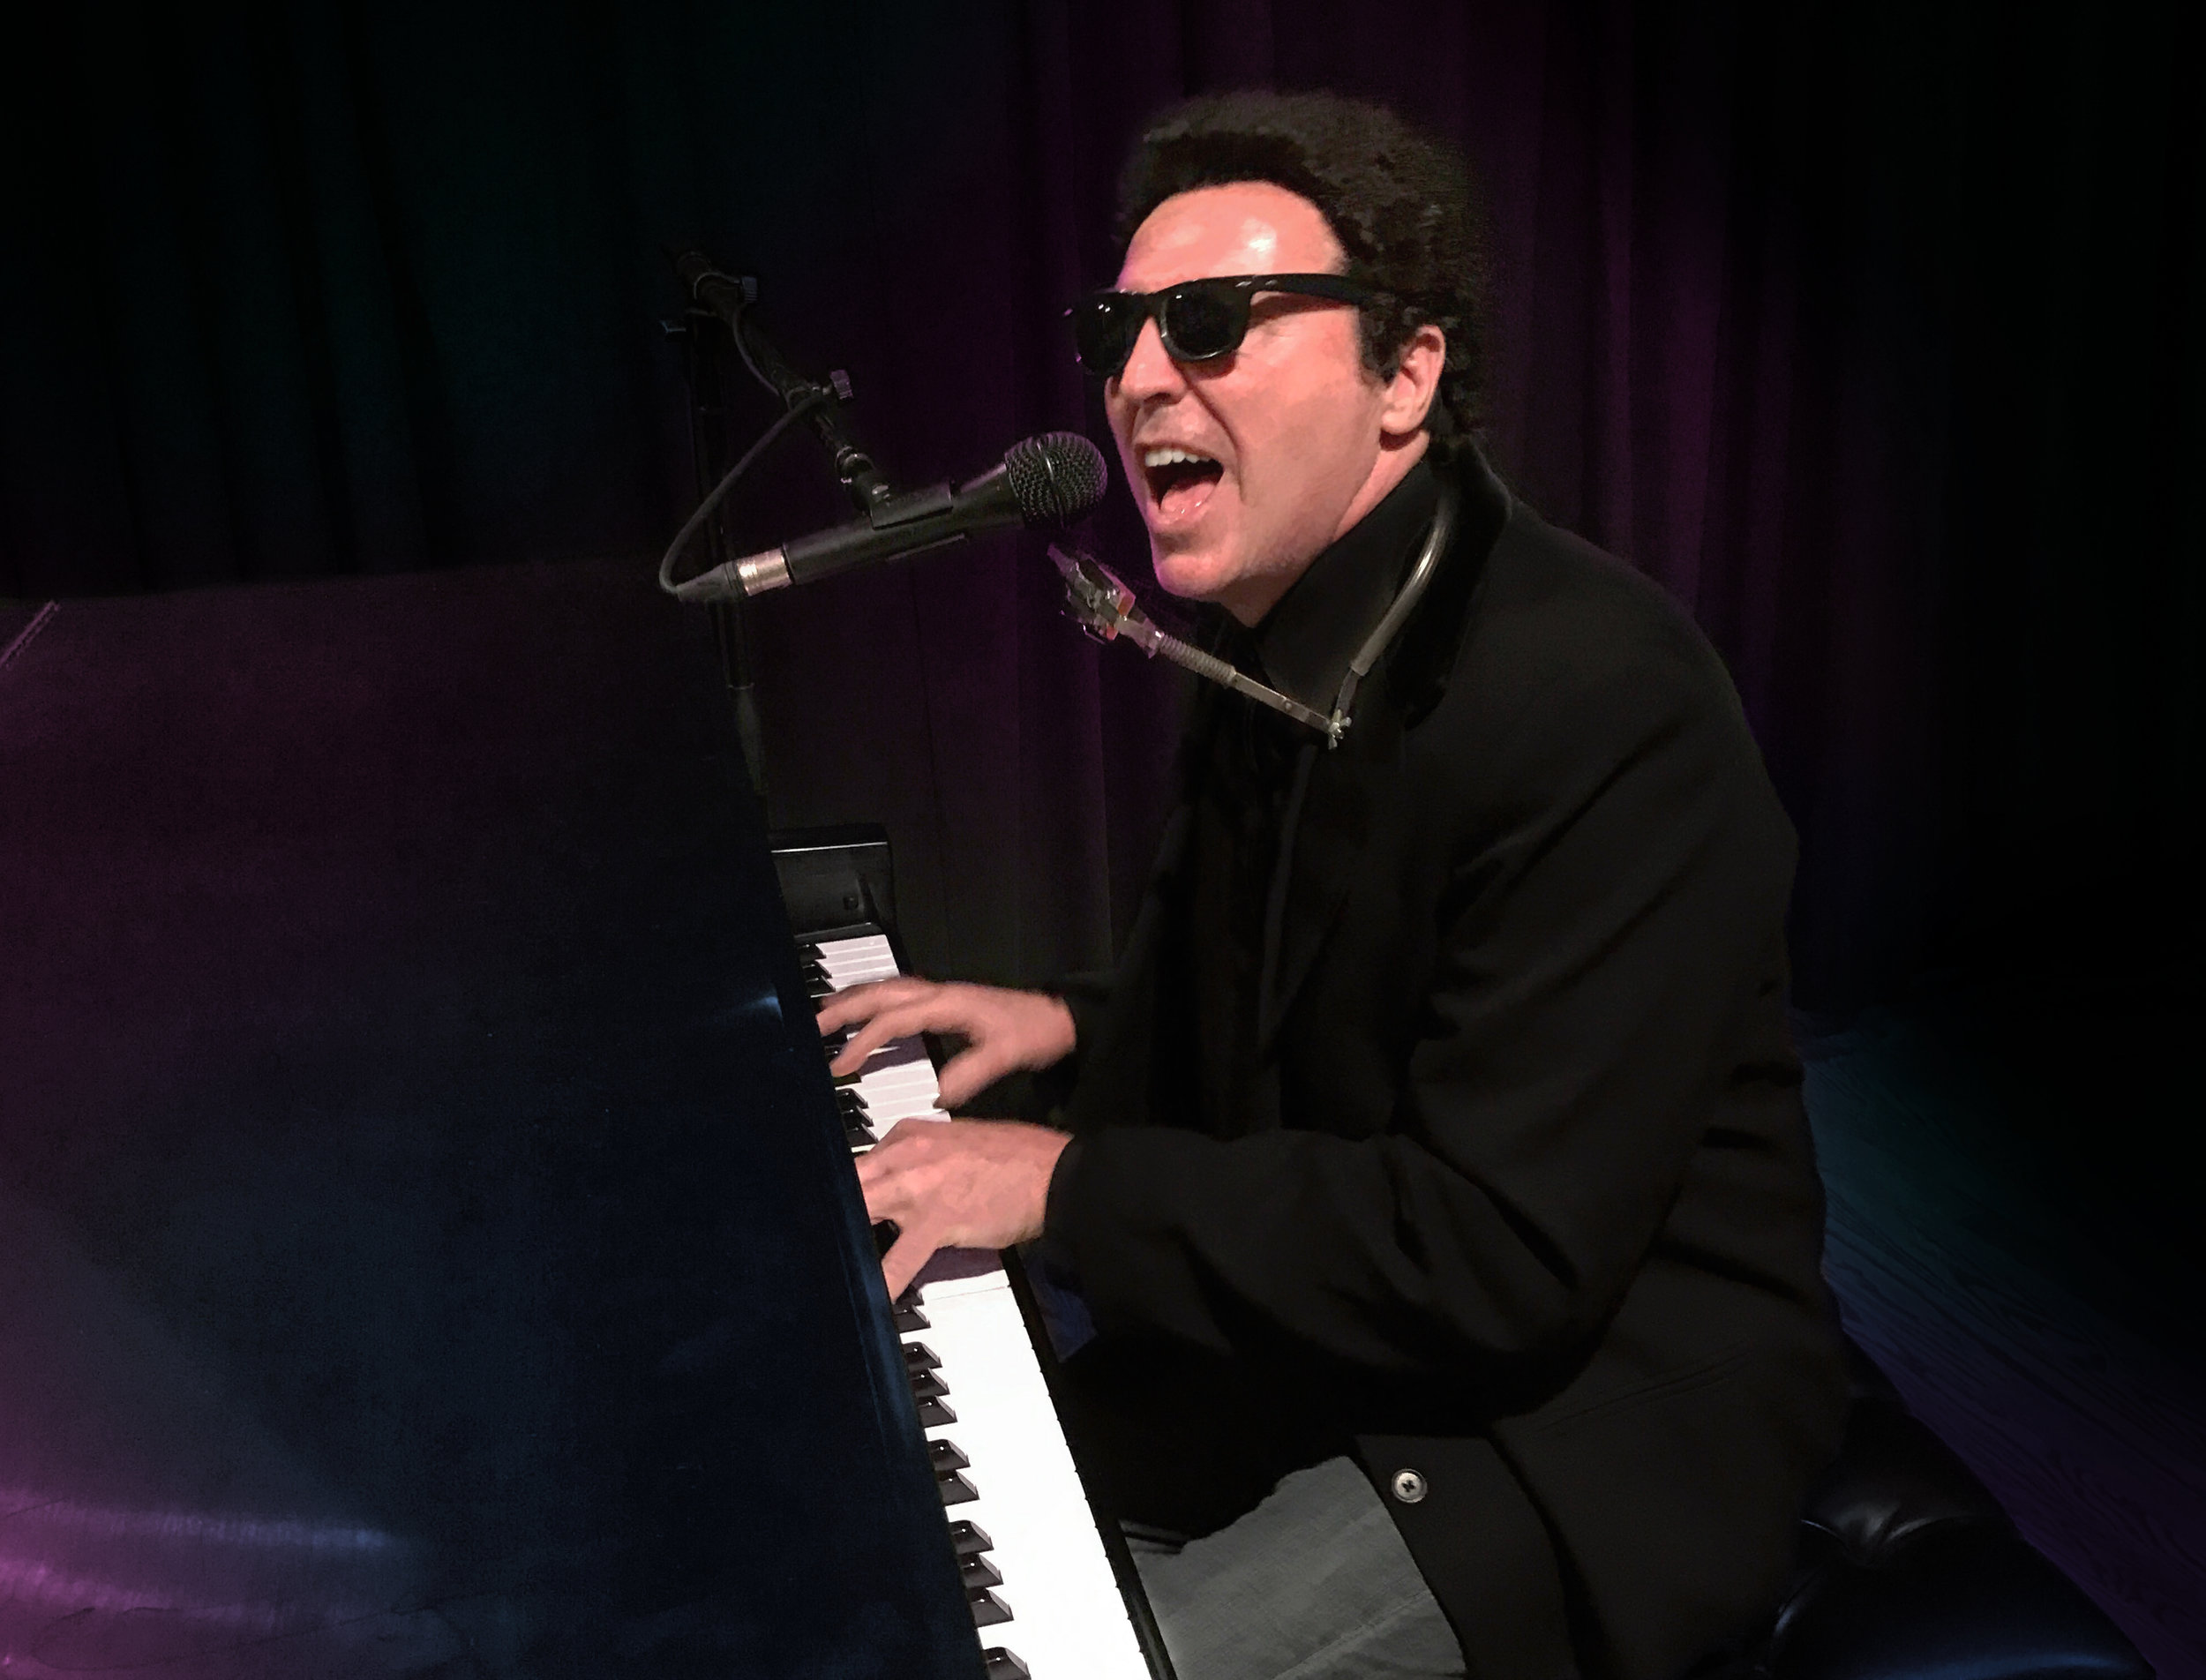 Brian Mahoney as Billy Joel